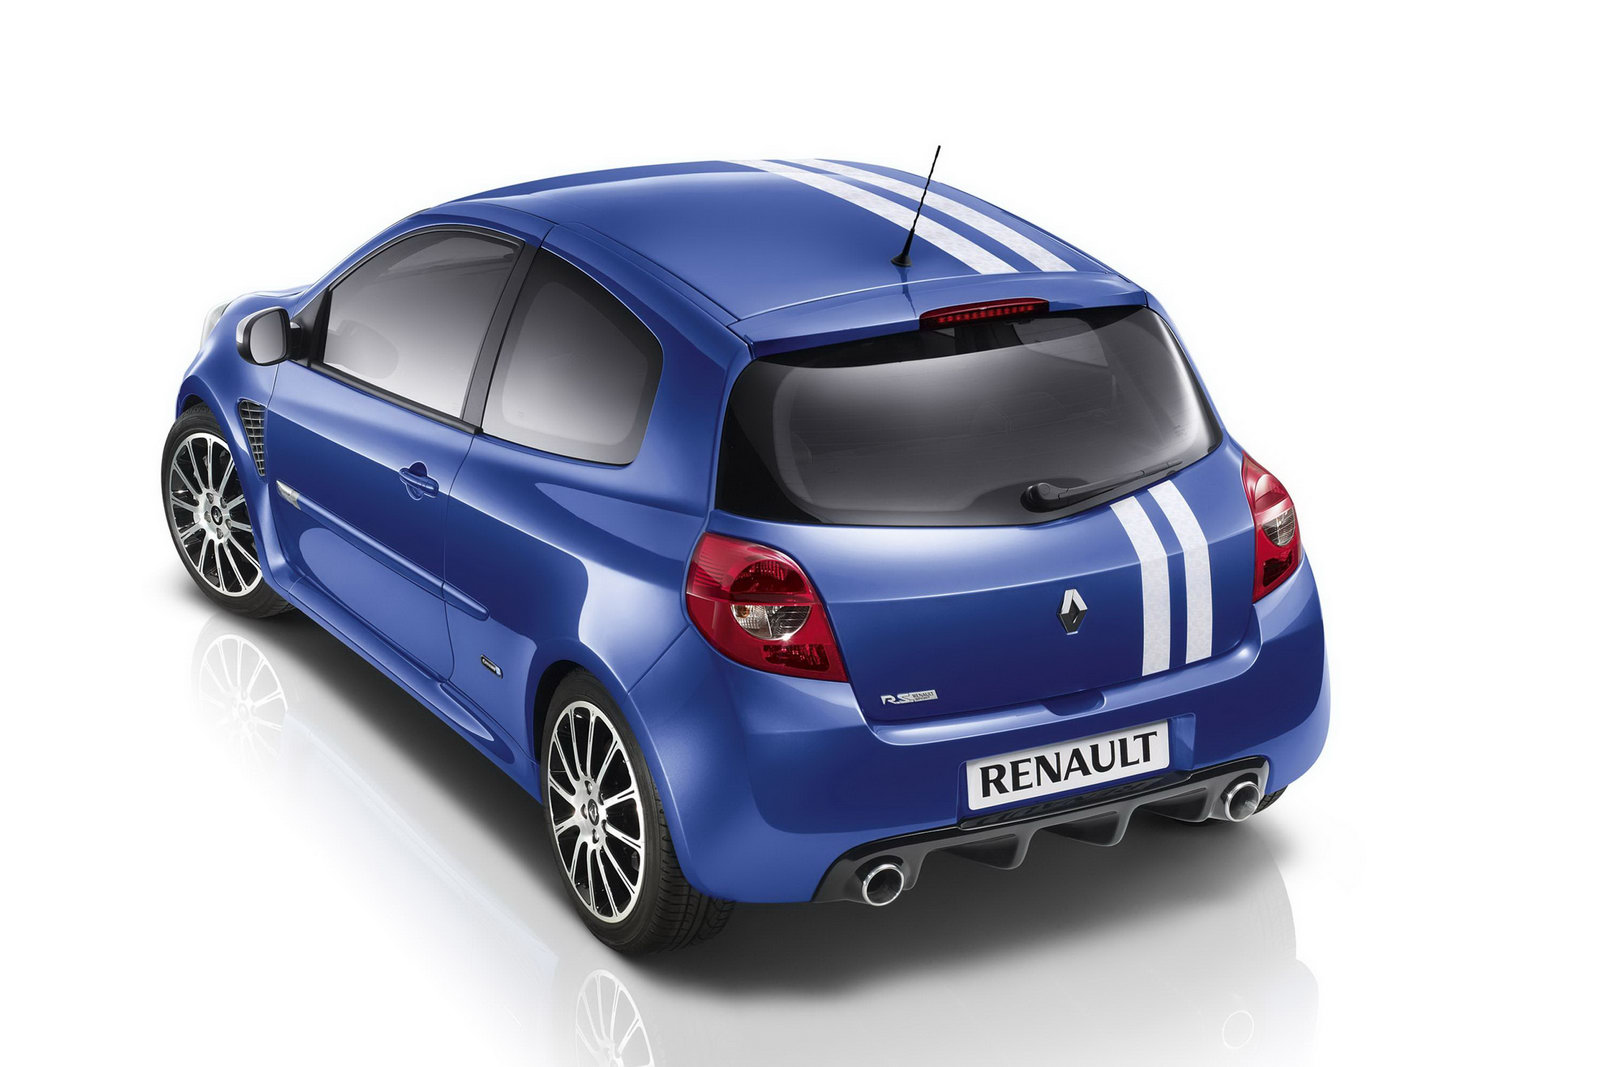 renault clio gordini technical details history photos on better parts ltd. Black Bedroom Furniture Sets. Home Design Ideas